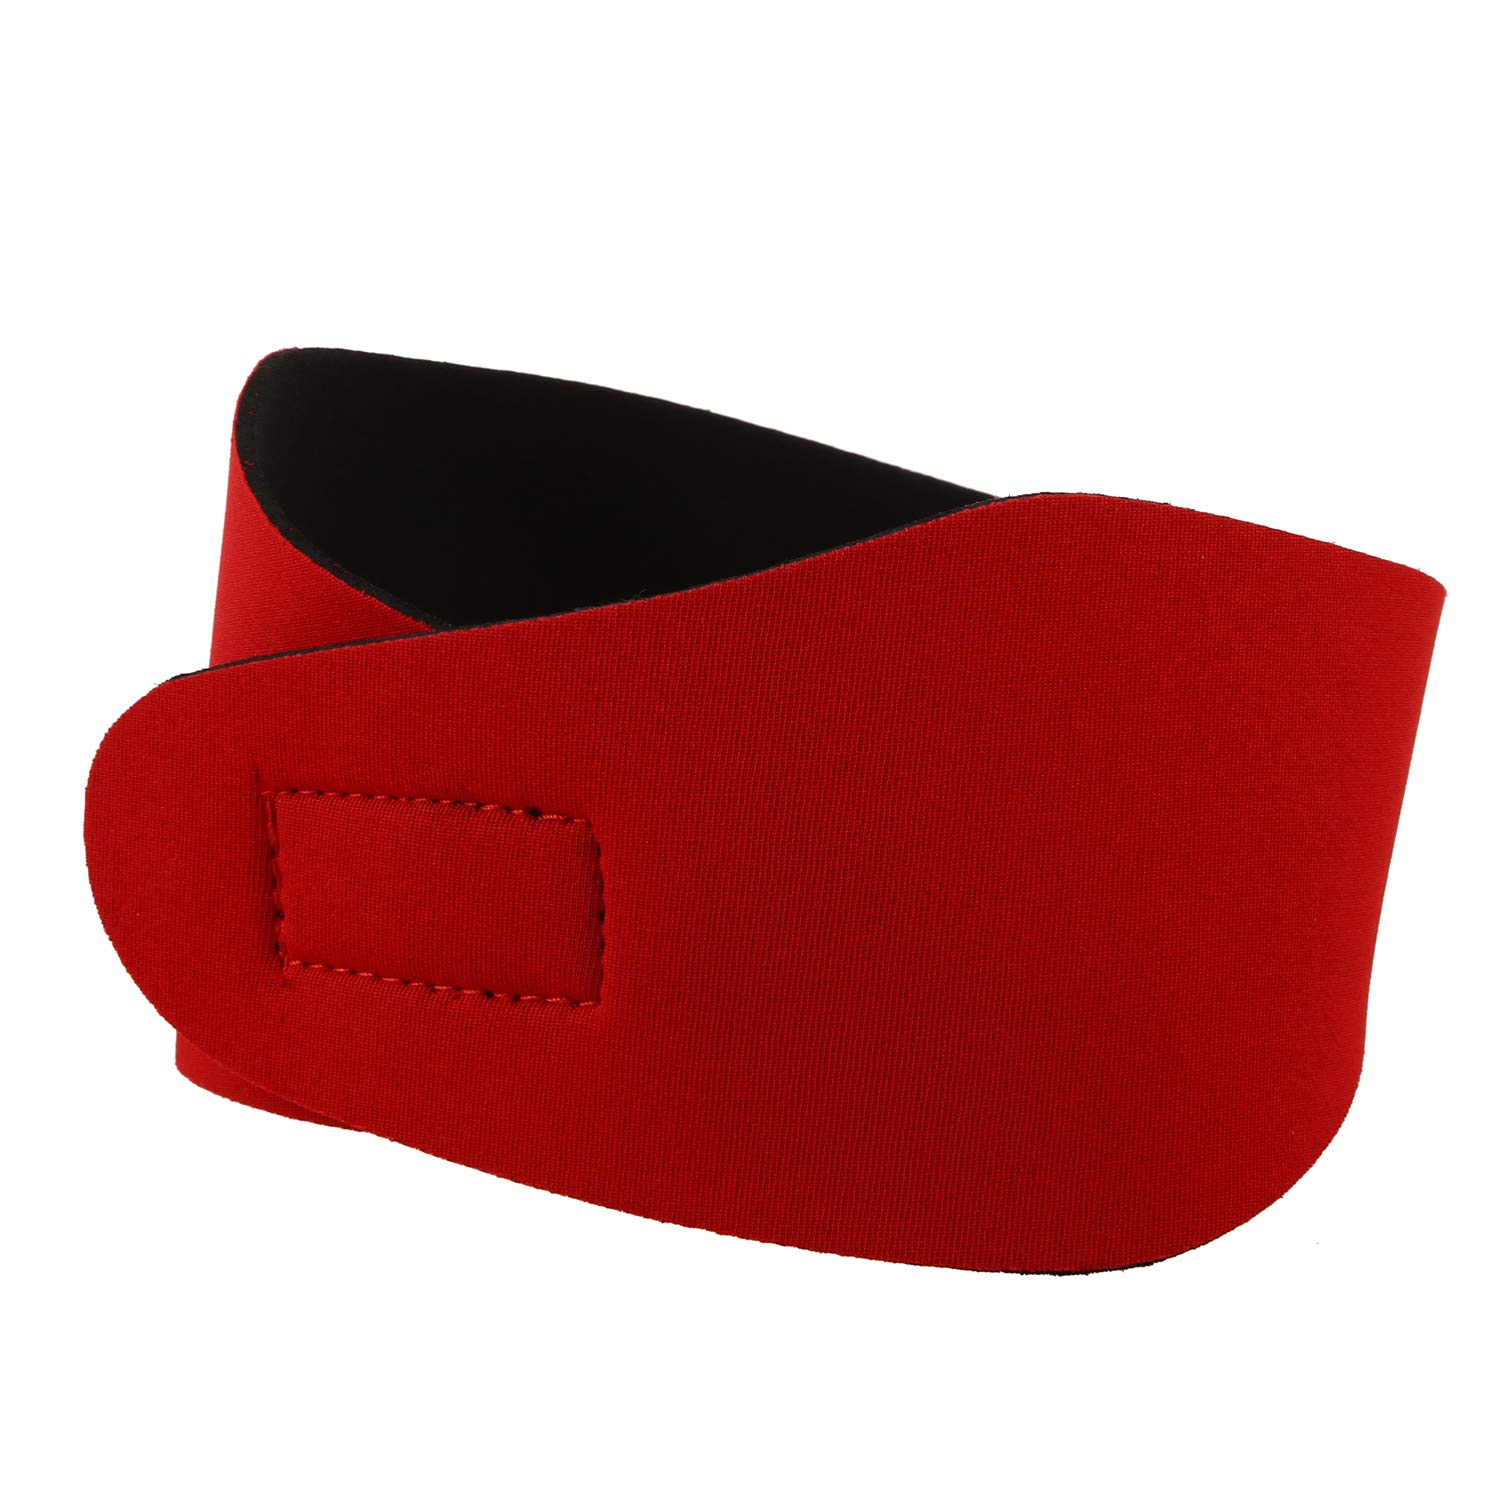 Nrpfell Swimming Ear Hair Band For Women Men Adult Children Neoprene Ear Band Swimming Headband Water Protector Gear Head Band(red//M